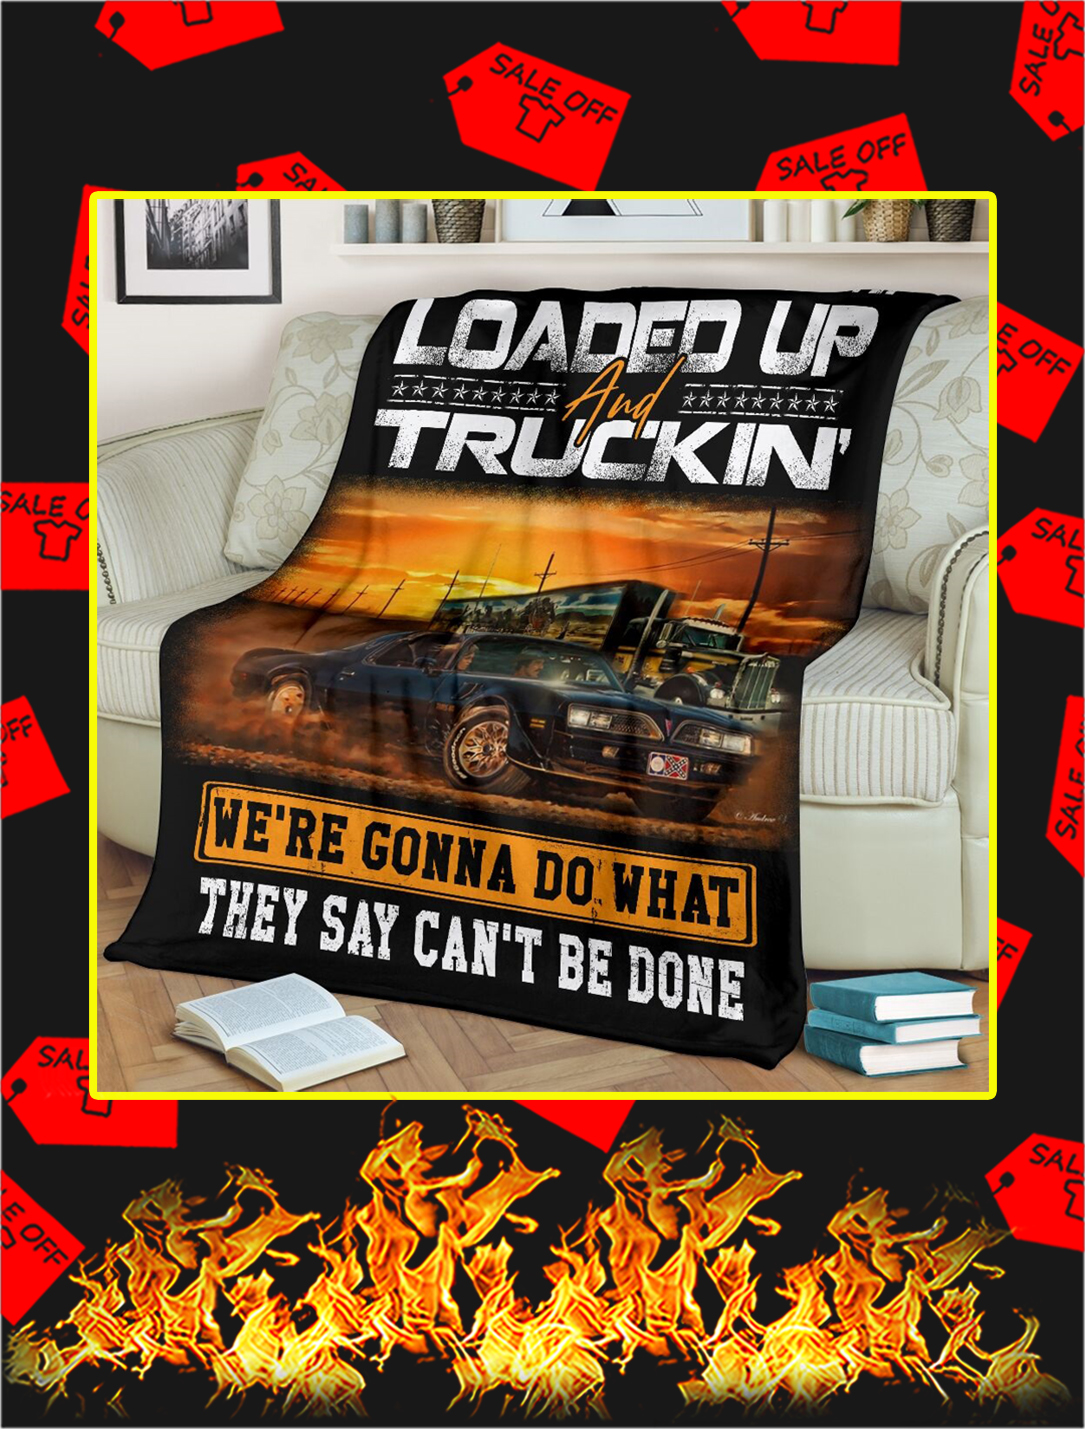 East Bound And Down Loaded Up And Truckin Blanket- x large